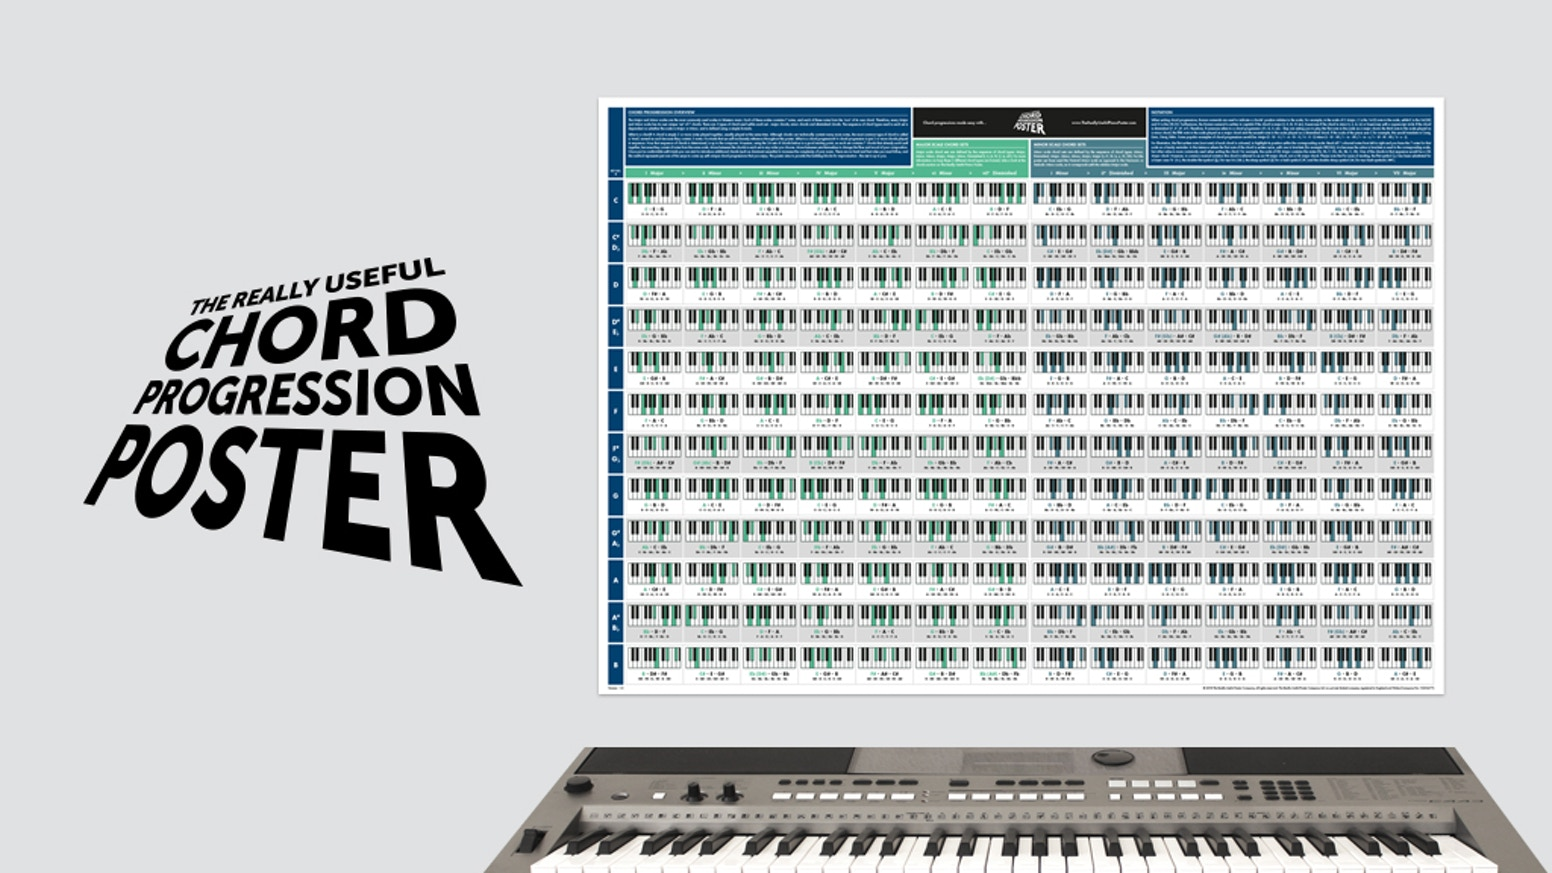 The Really Useful Chord Progression Poster makes playing chord progressions and composing music easier and more fun.